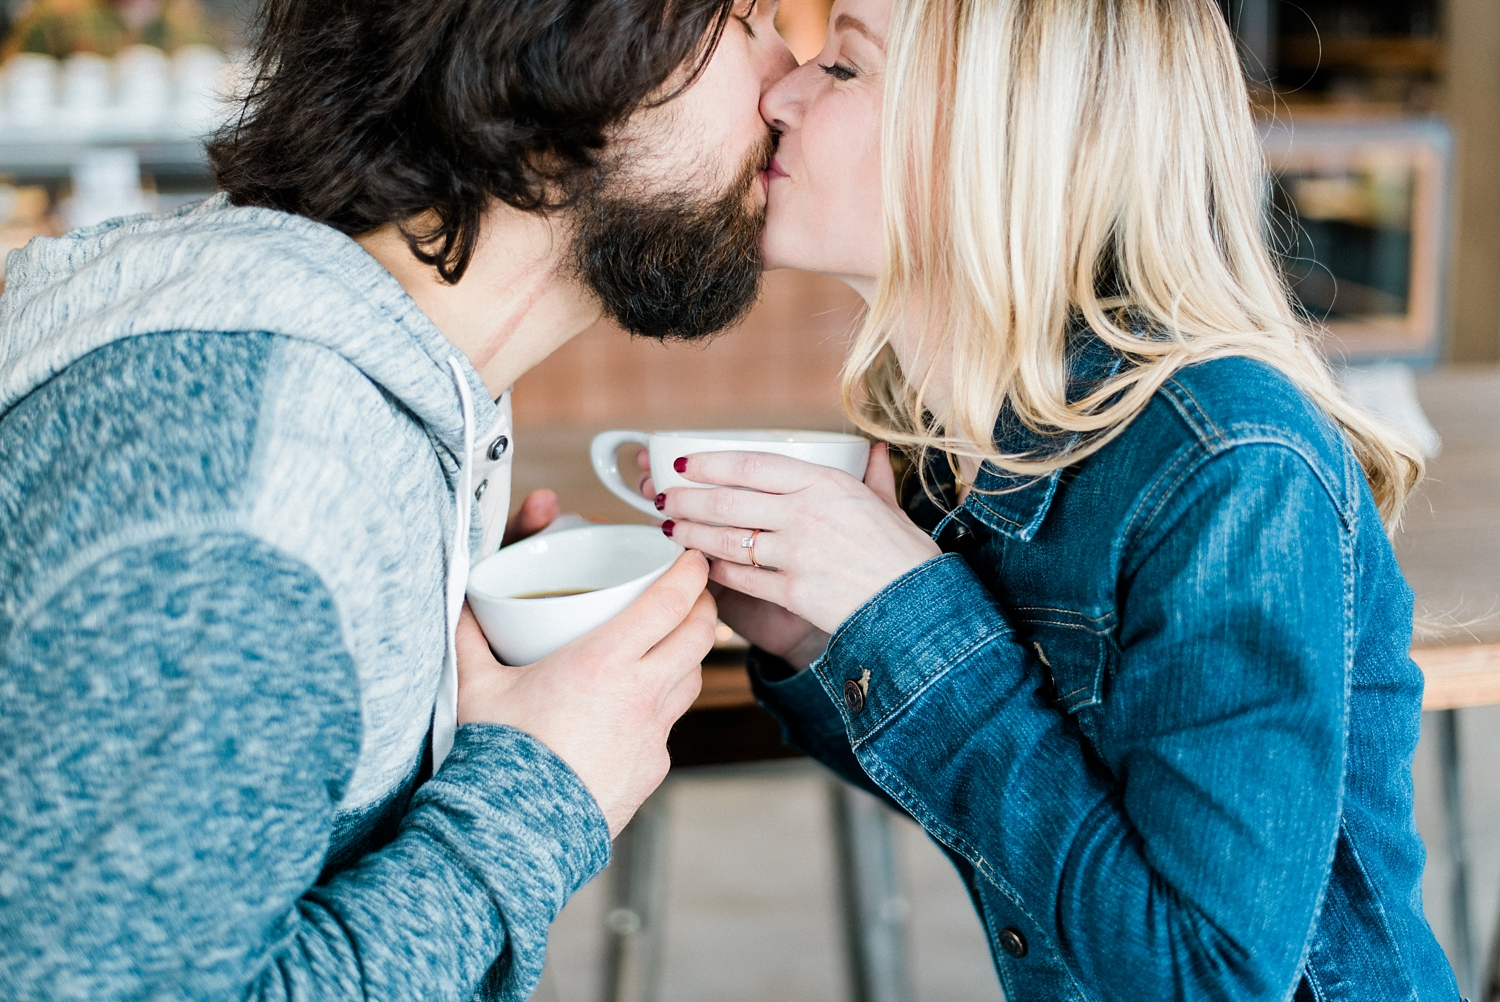 portland-coffee-engagement-session-ristretto-roasters-shelley-marie-photo-037_cr.jpg